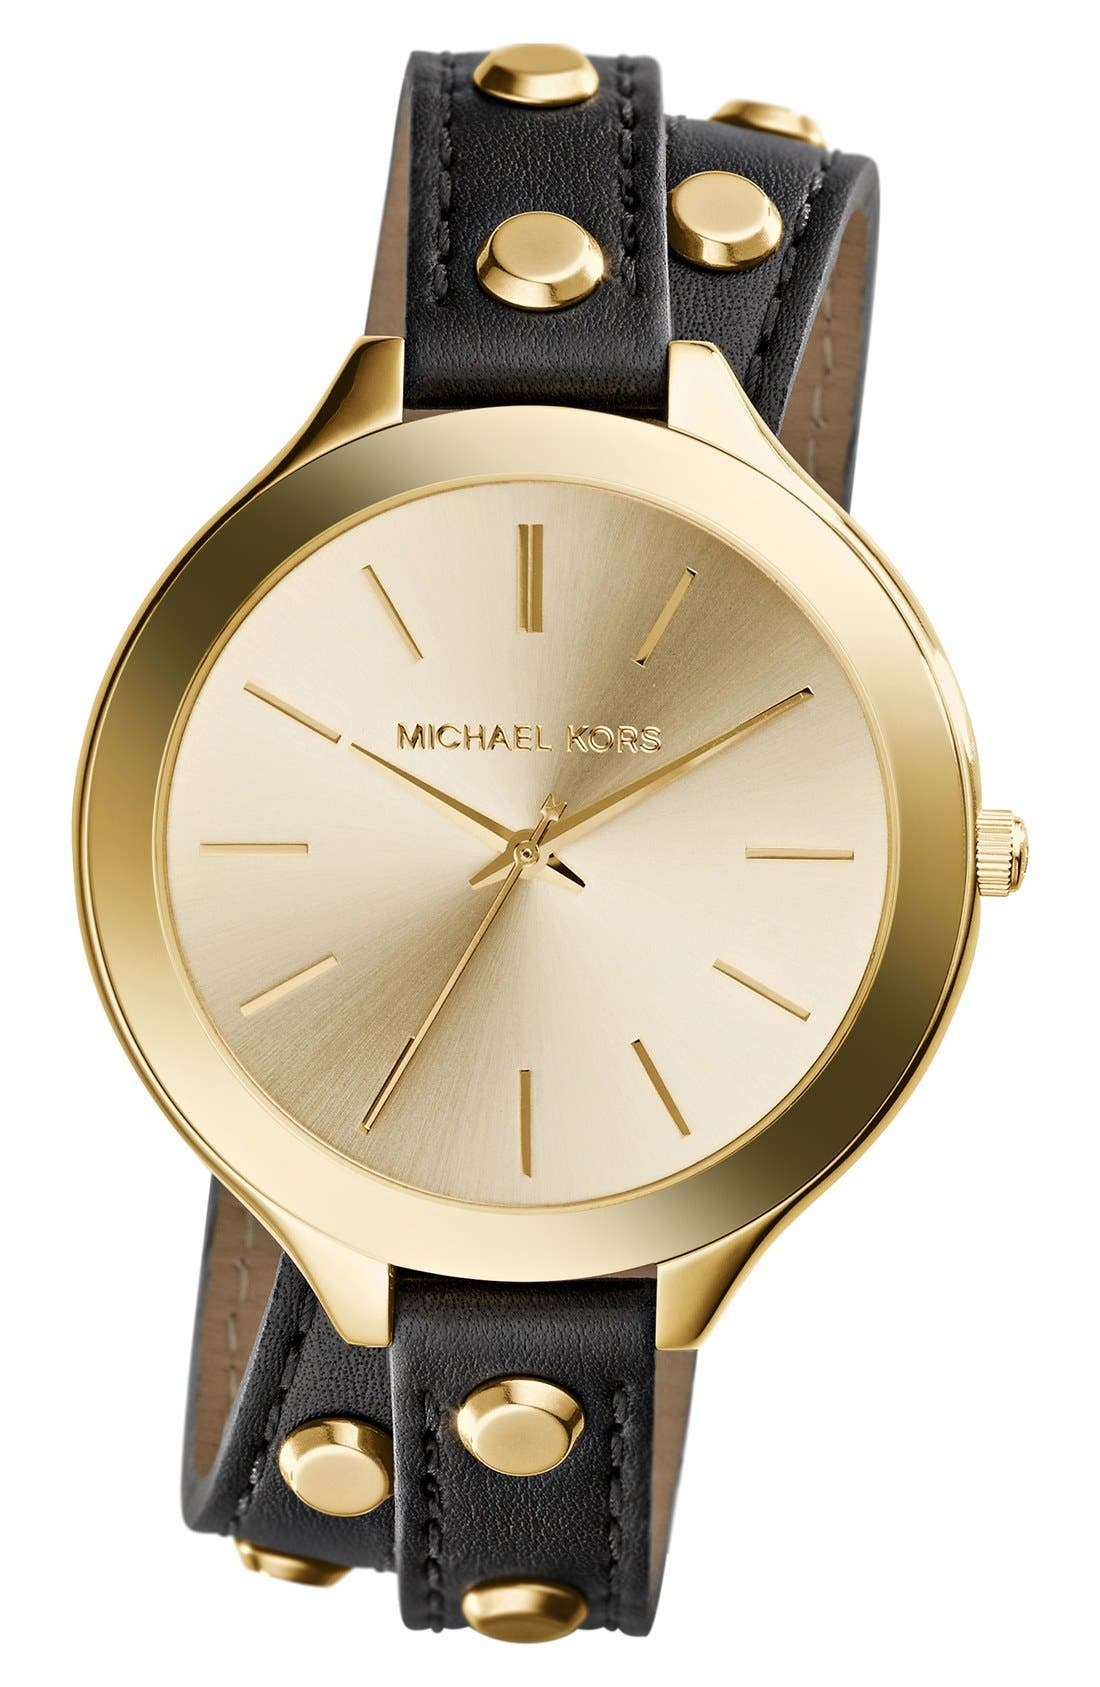 Main Image - Michael Kors 'Slim Runway' Double Wrap Leather Strap Watch, 42mm